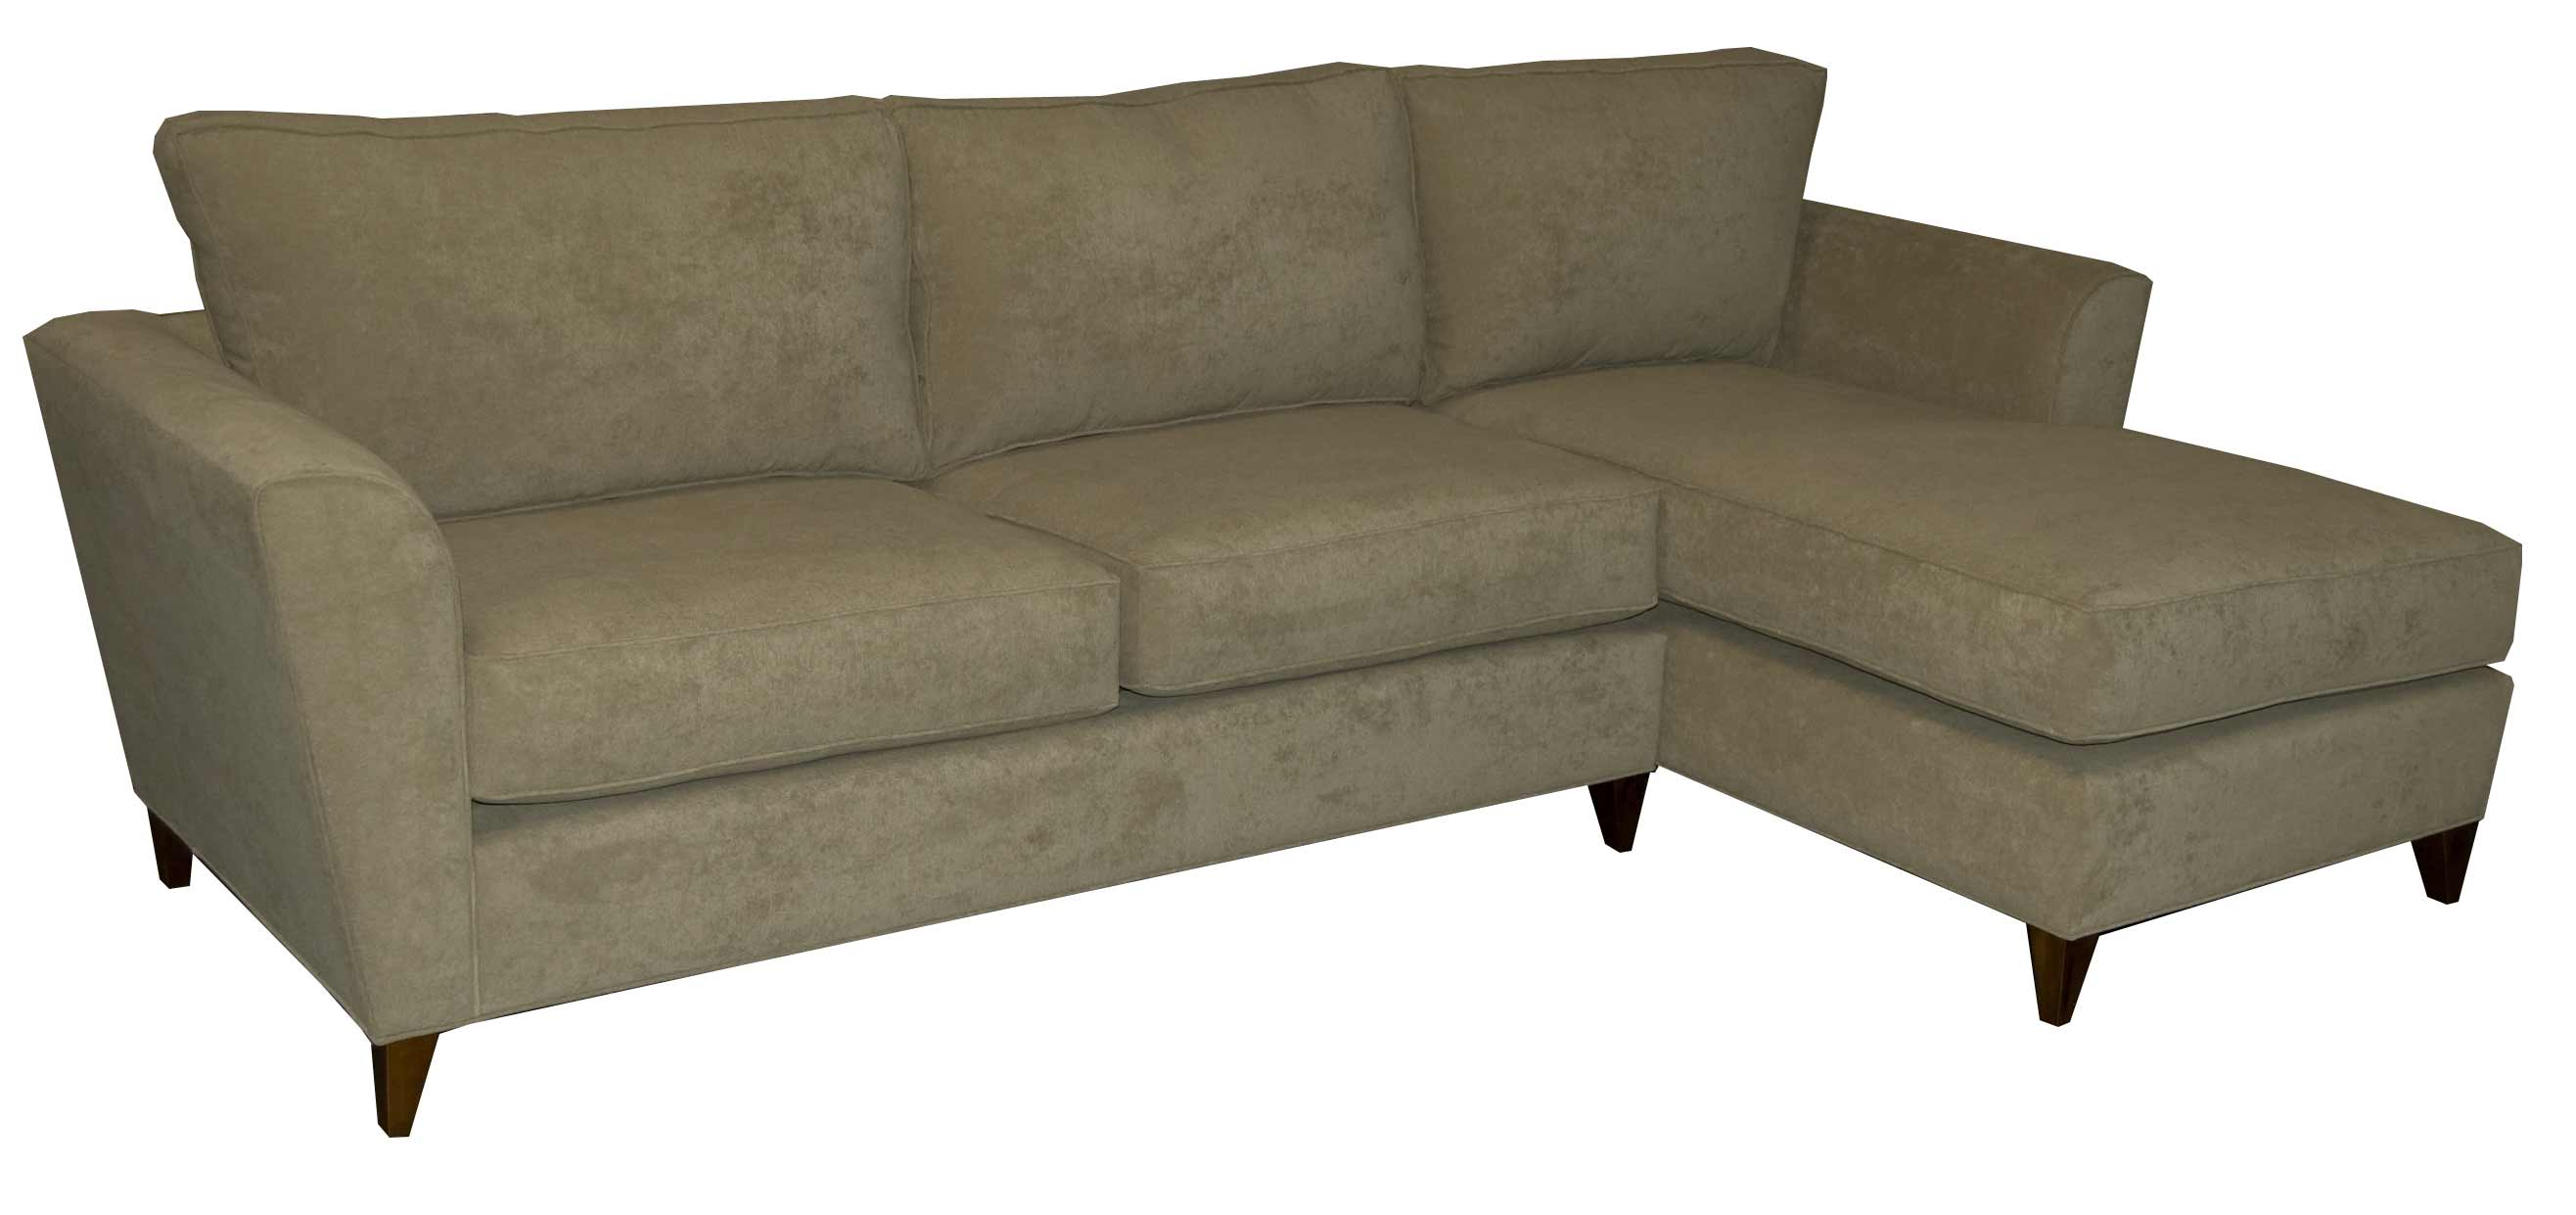 affordable couches online